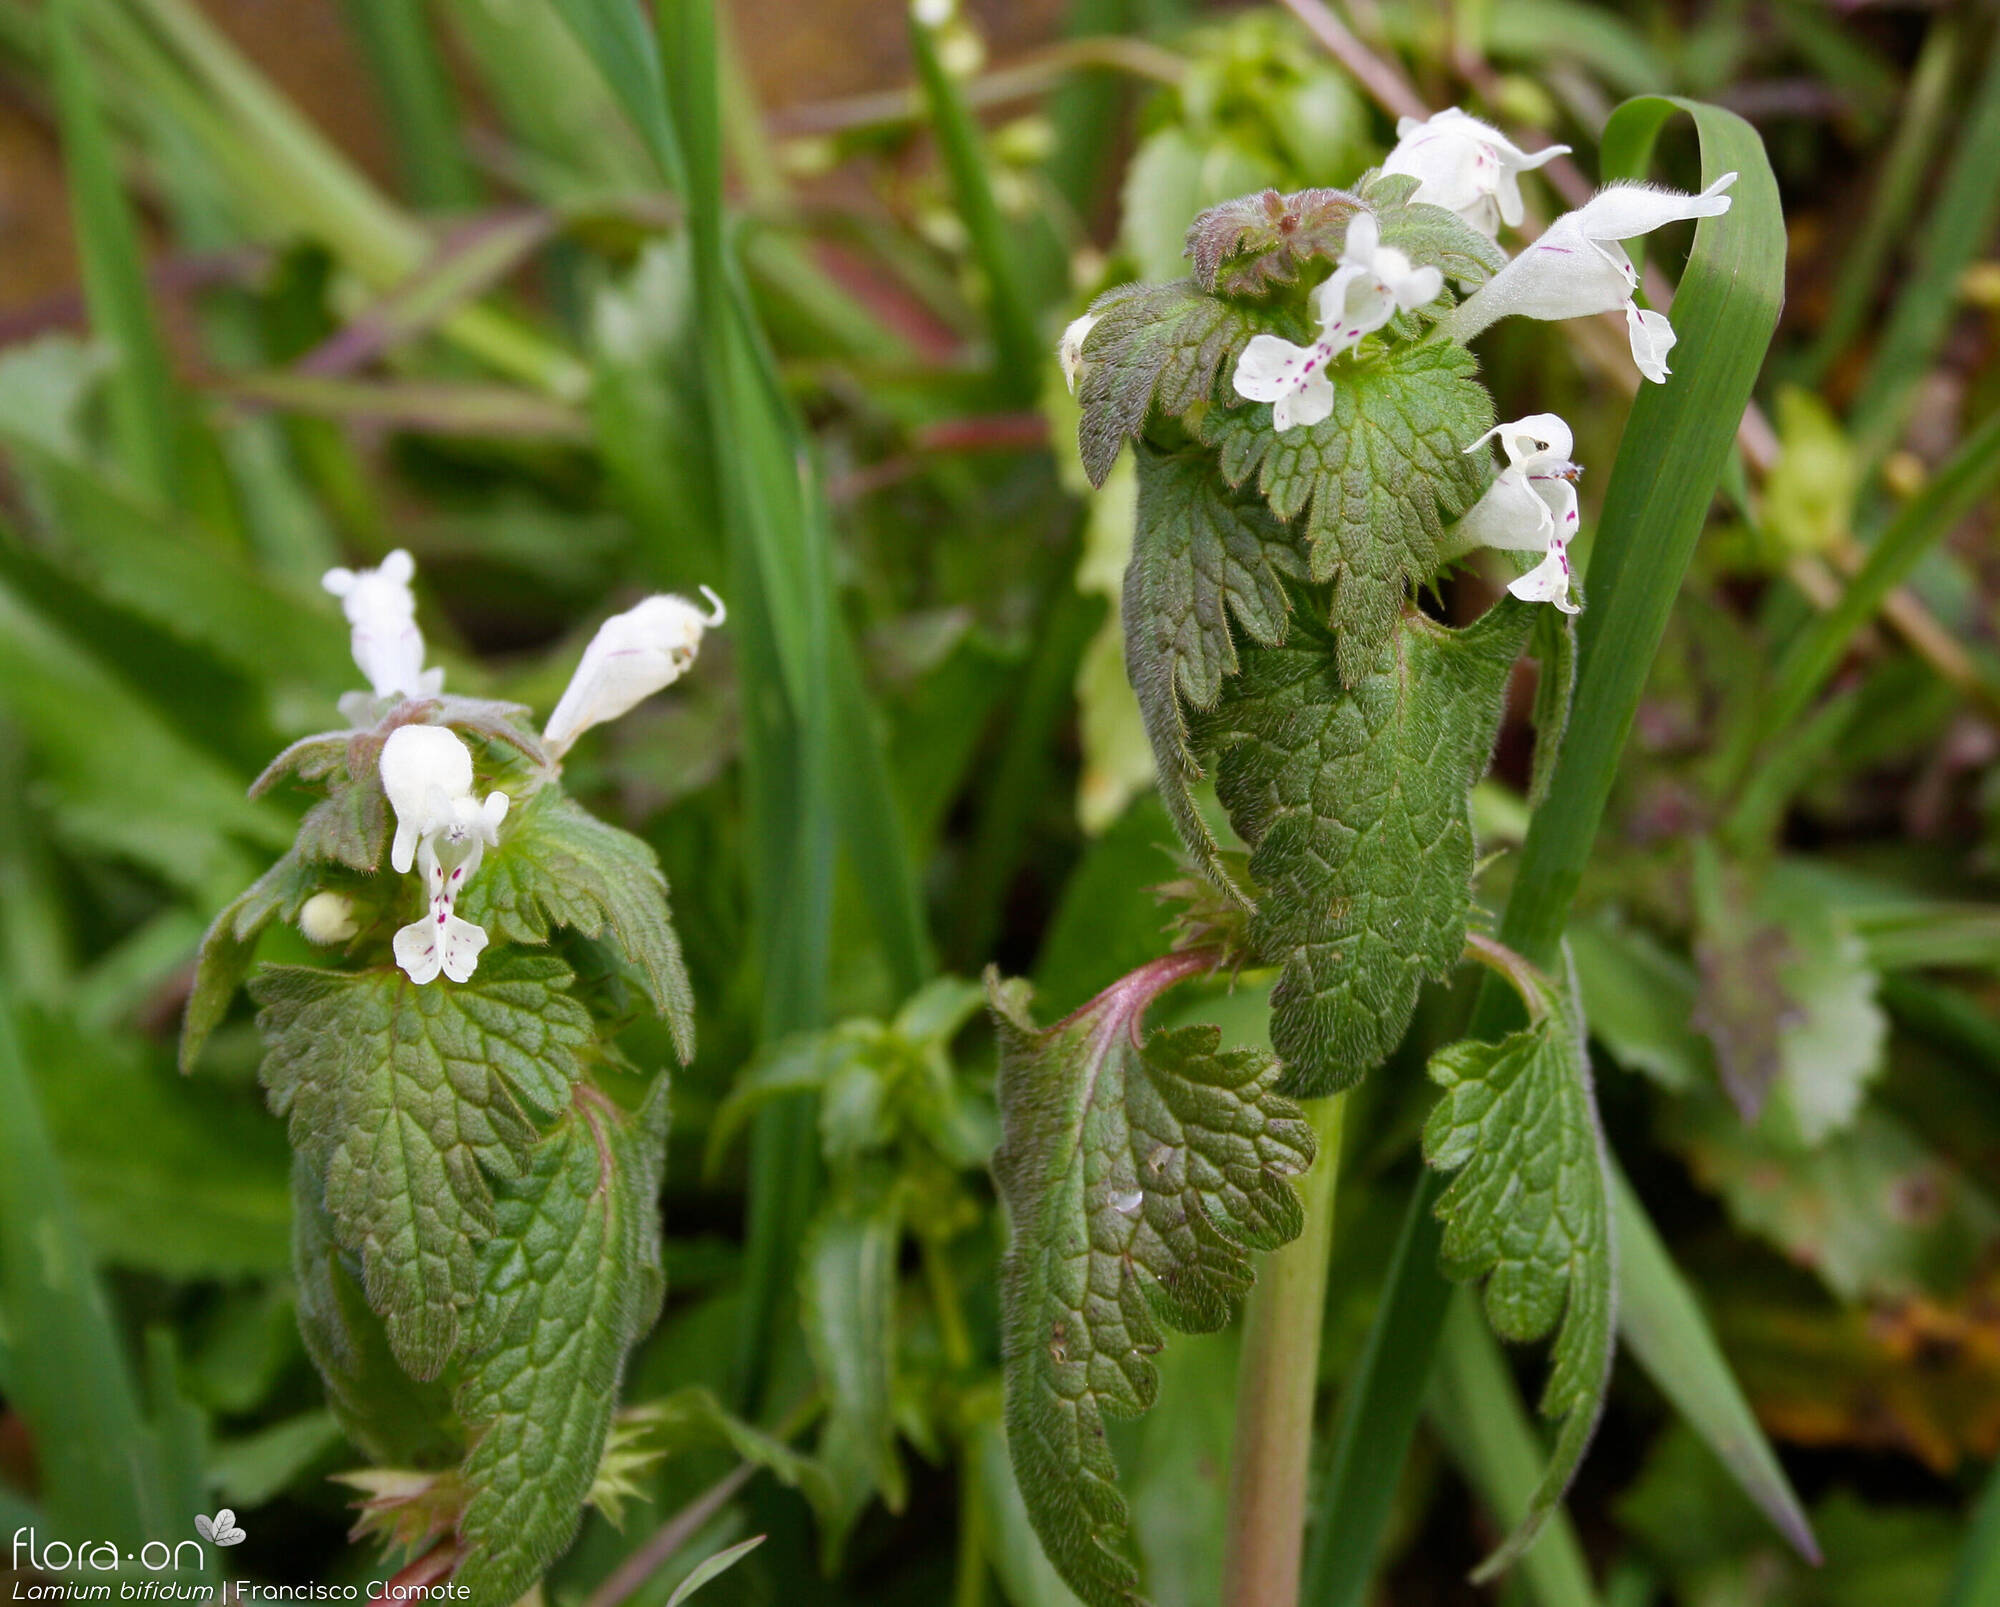 Lamium bifidum - Hábito | Francisco Clamote; CC BY-NC 4.0